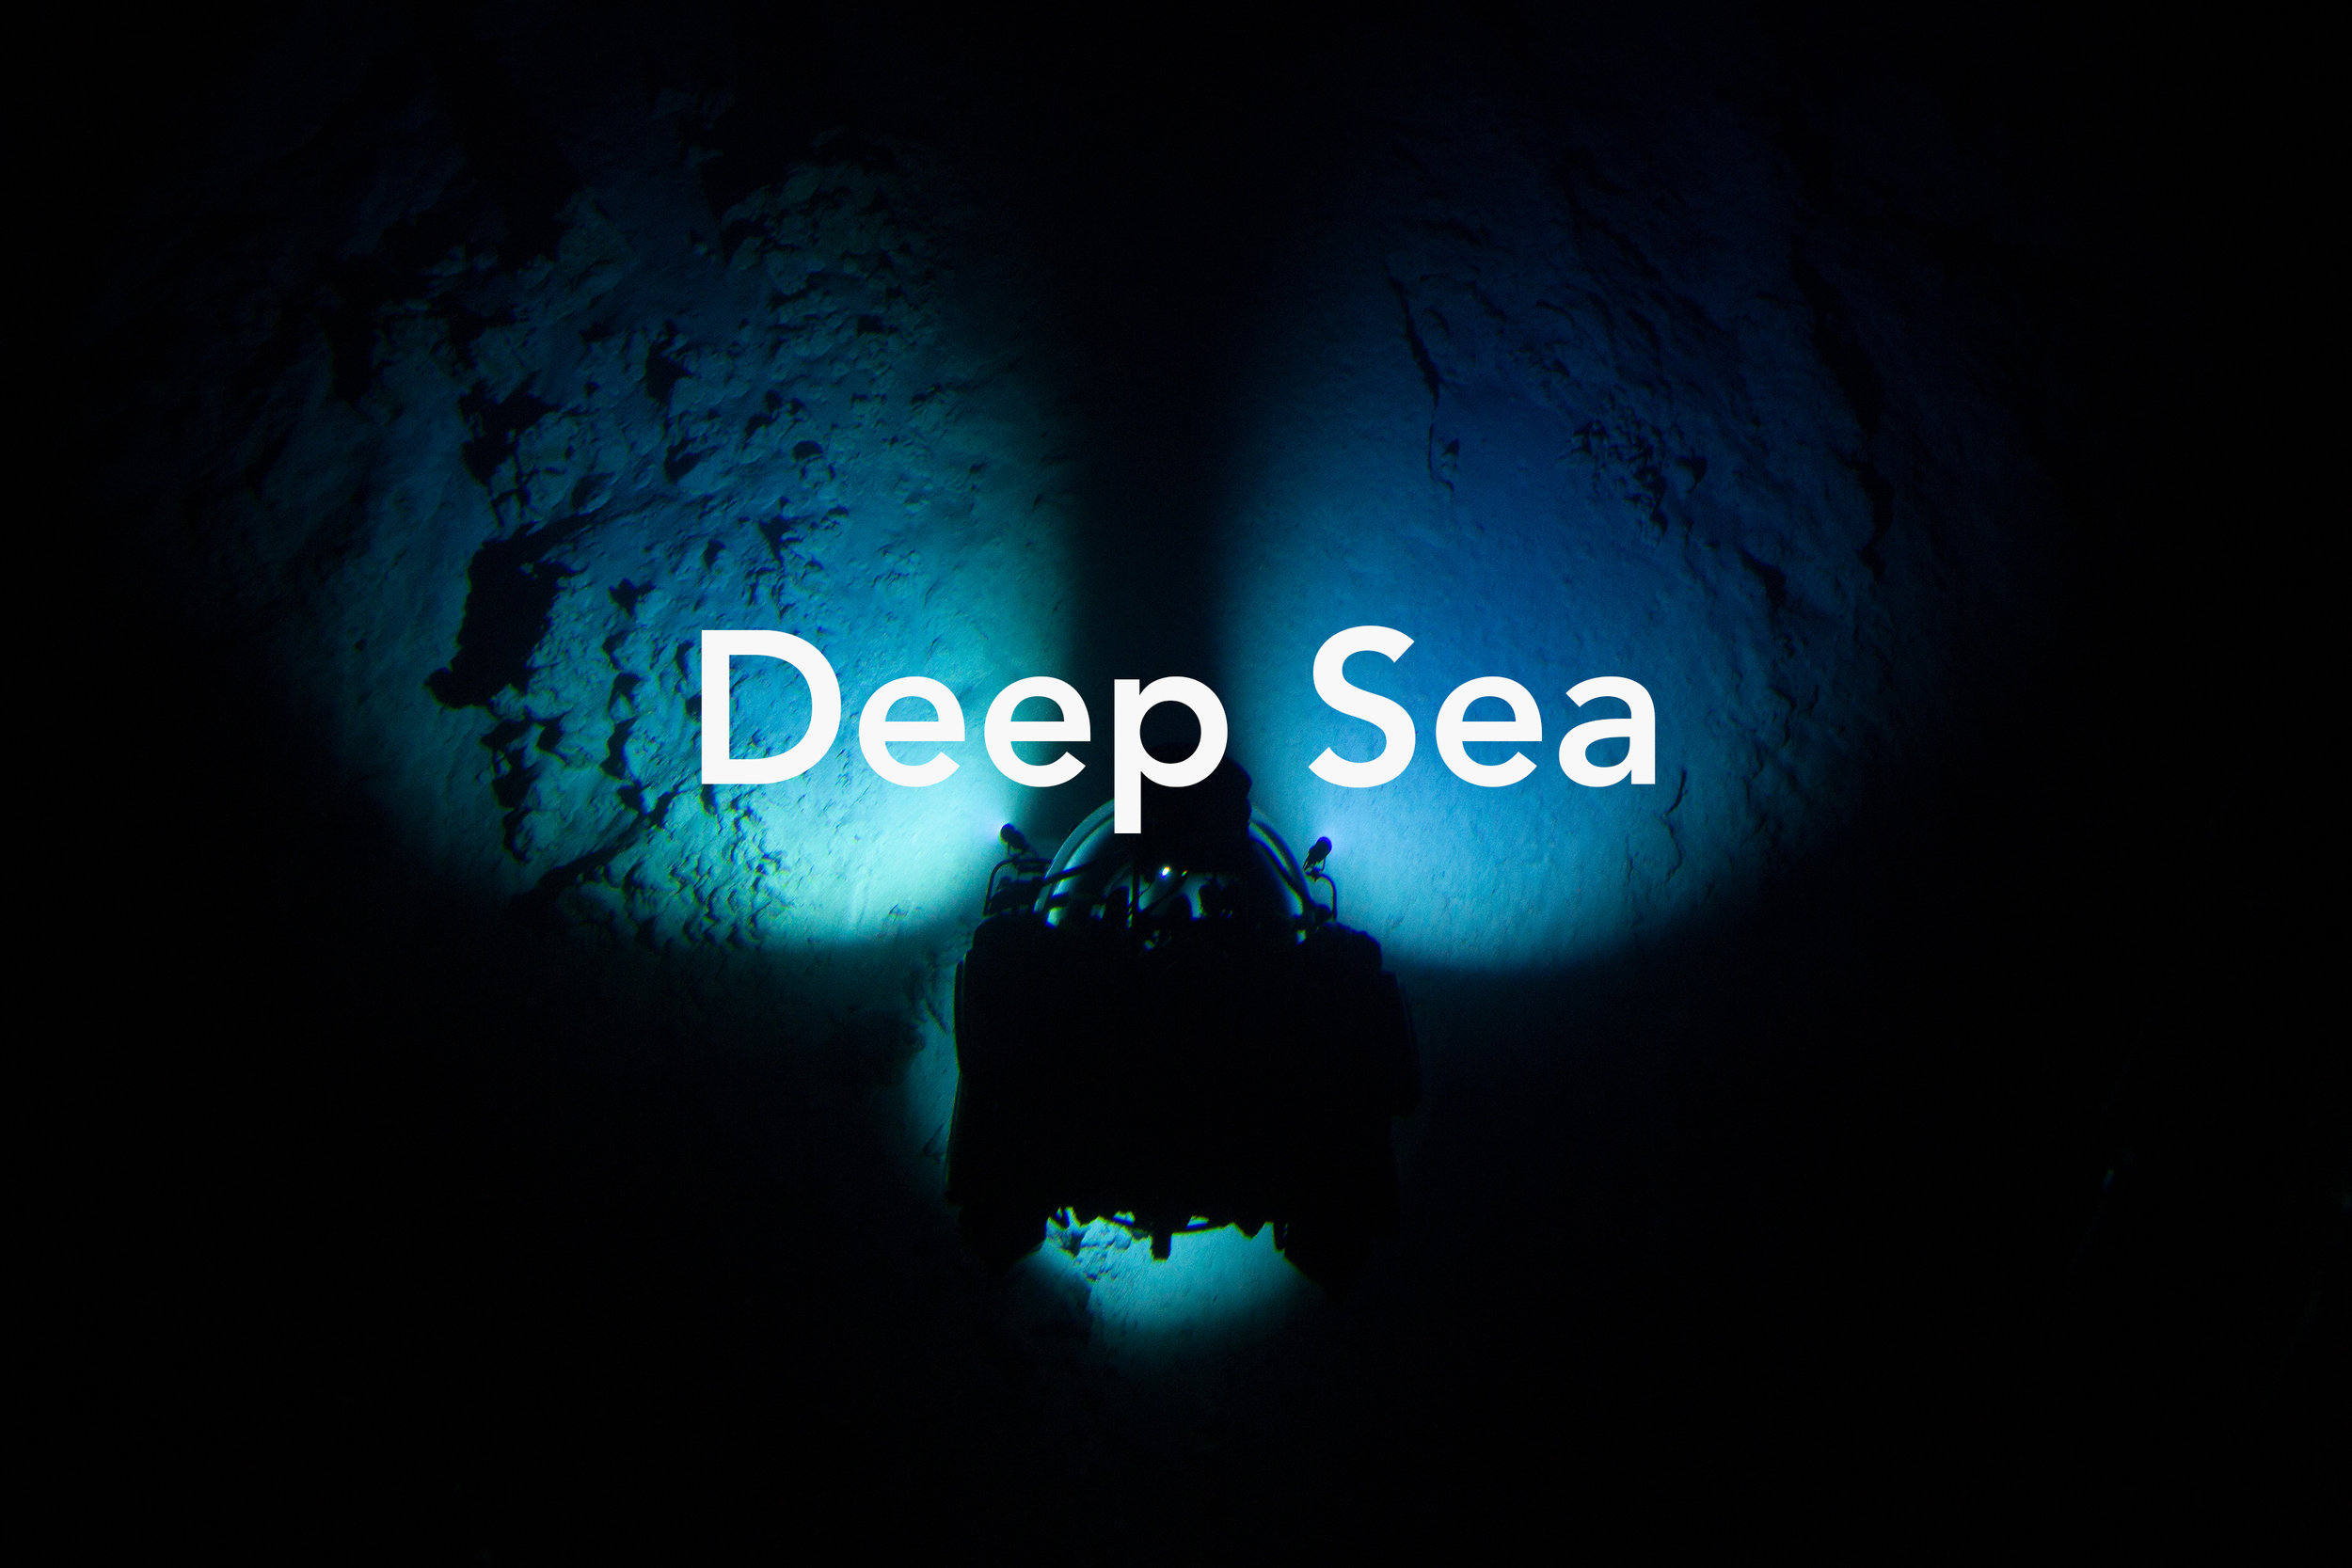 Deep Sea Cover May 2019.jpg